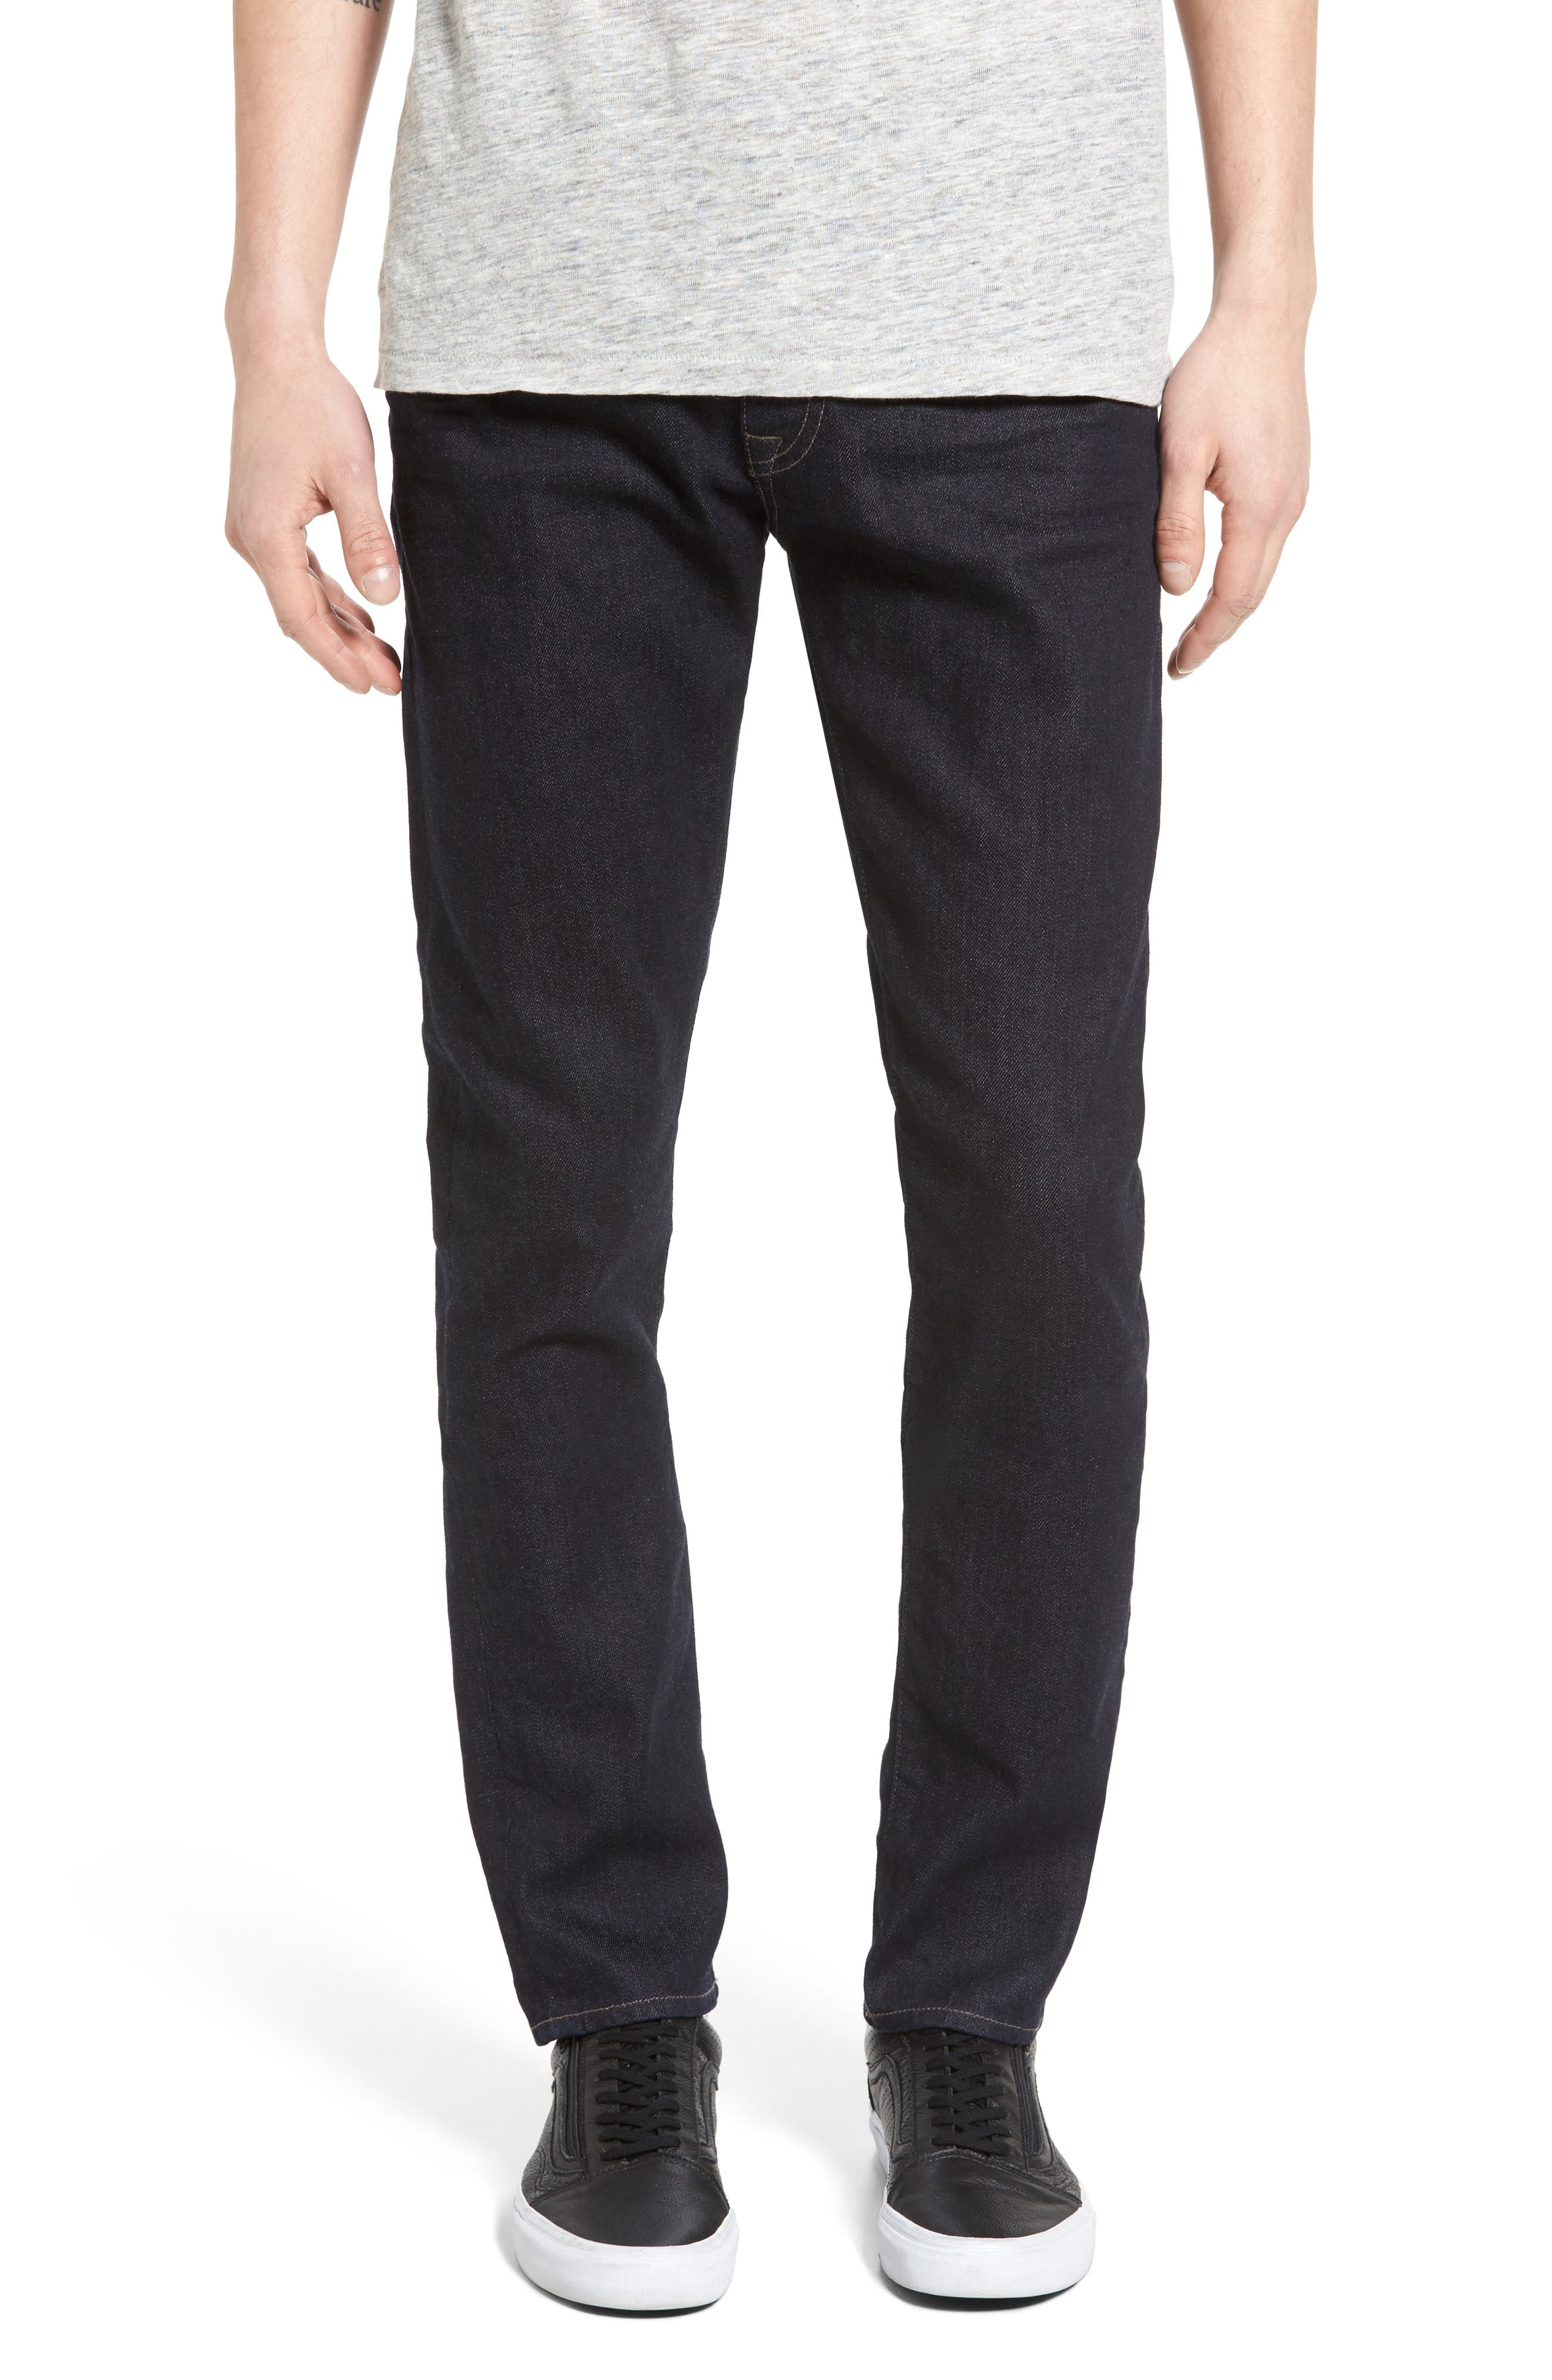 James Skinny Fit Jeans,                         Main,                         color, Midnight Williamsburg